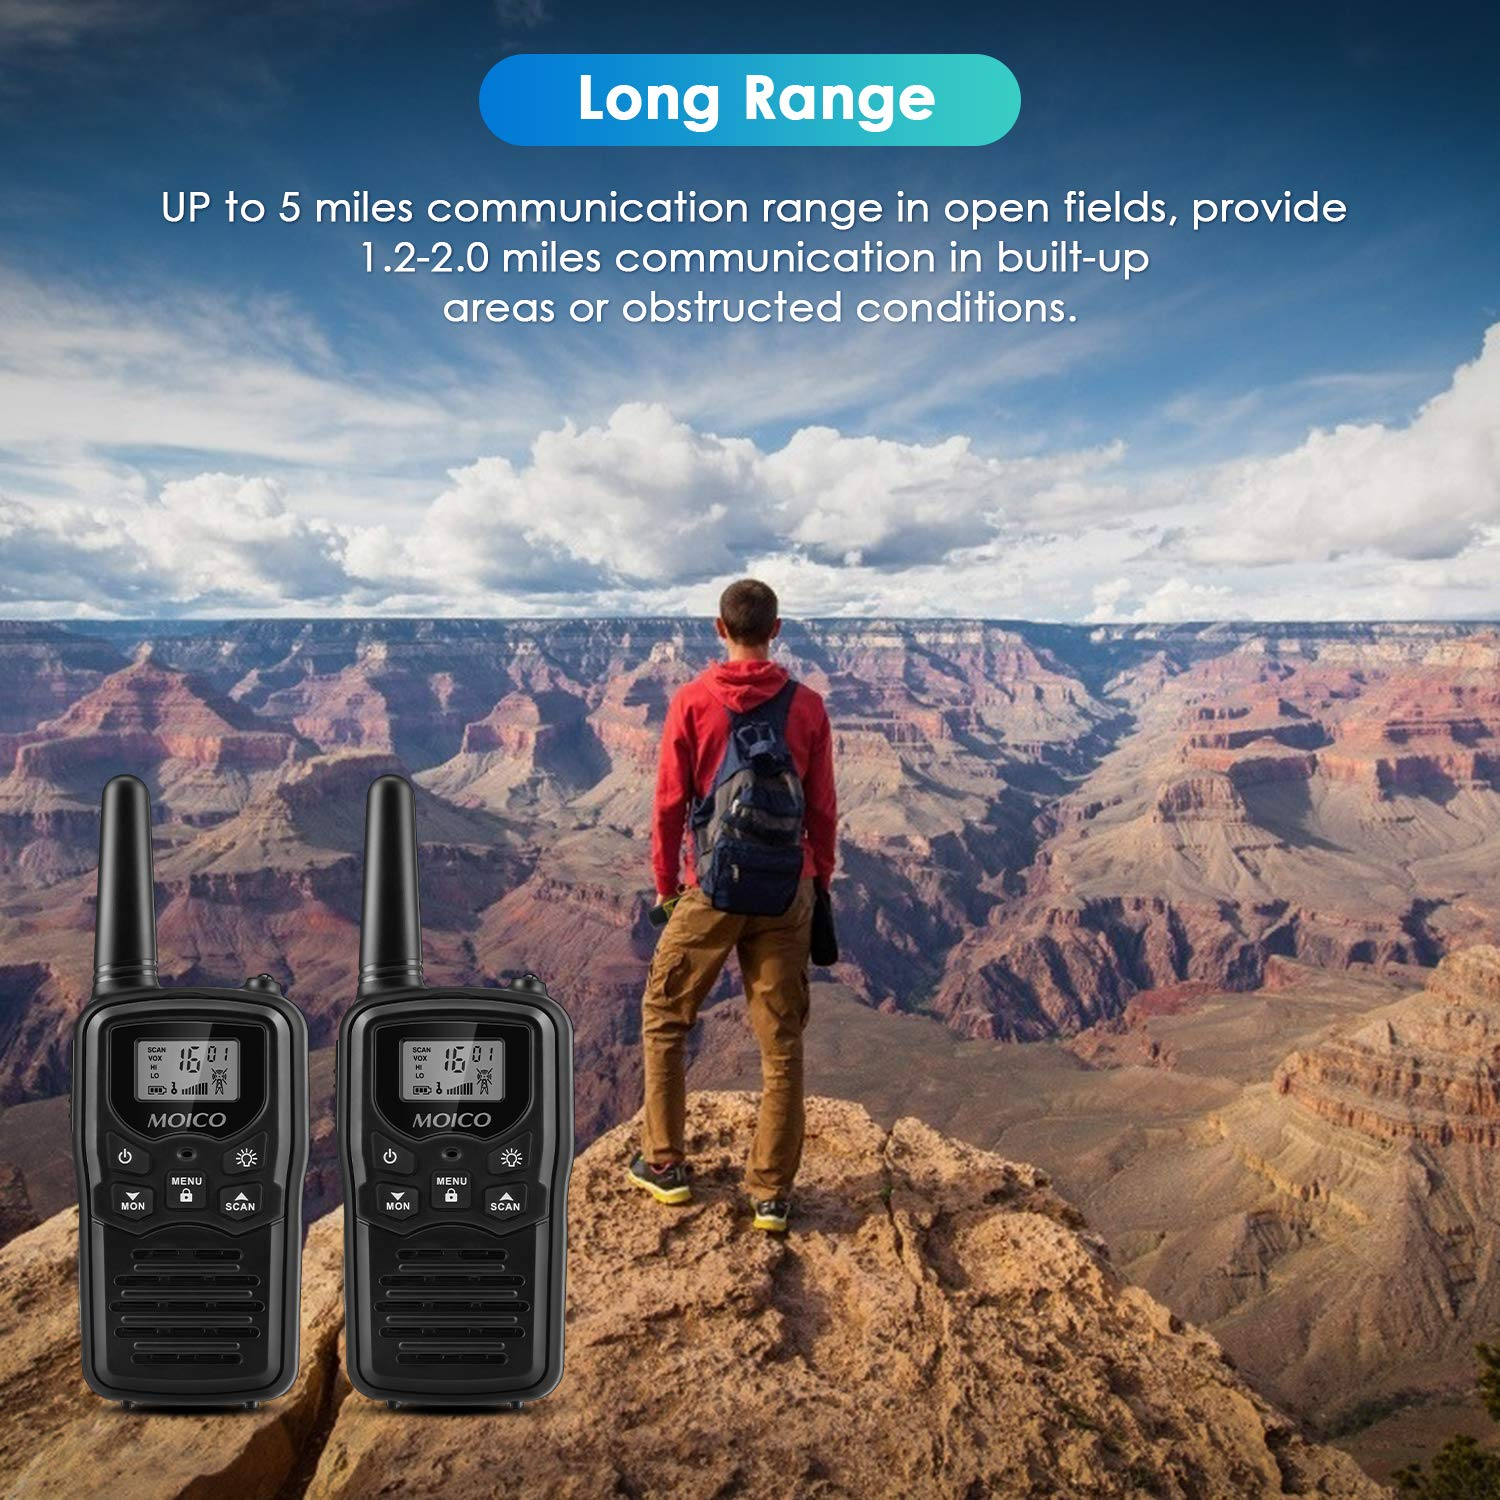 Professional Rechargeable Walkie Talkies,MOICO Long Range Two Way Radios for Adults up to 5 Miles in Open Area,Handheld Talkies Talky with 22 Channels FRS//GMRS VOX Scan LCD Display LED Flashlight